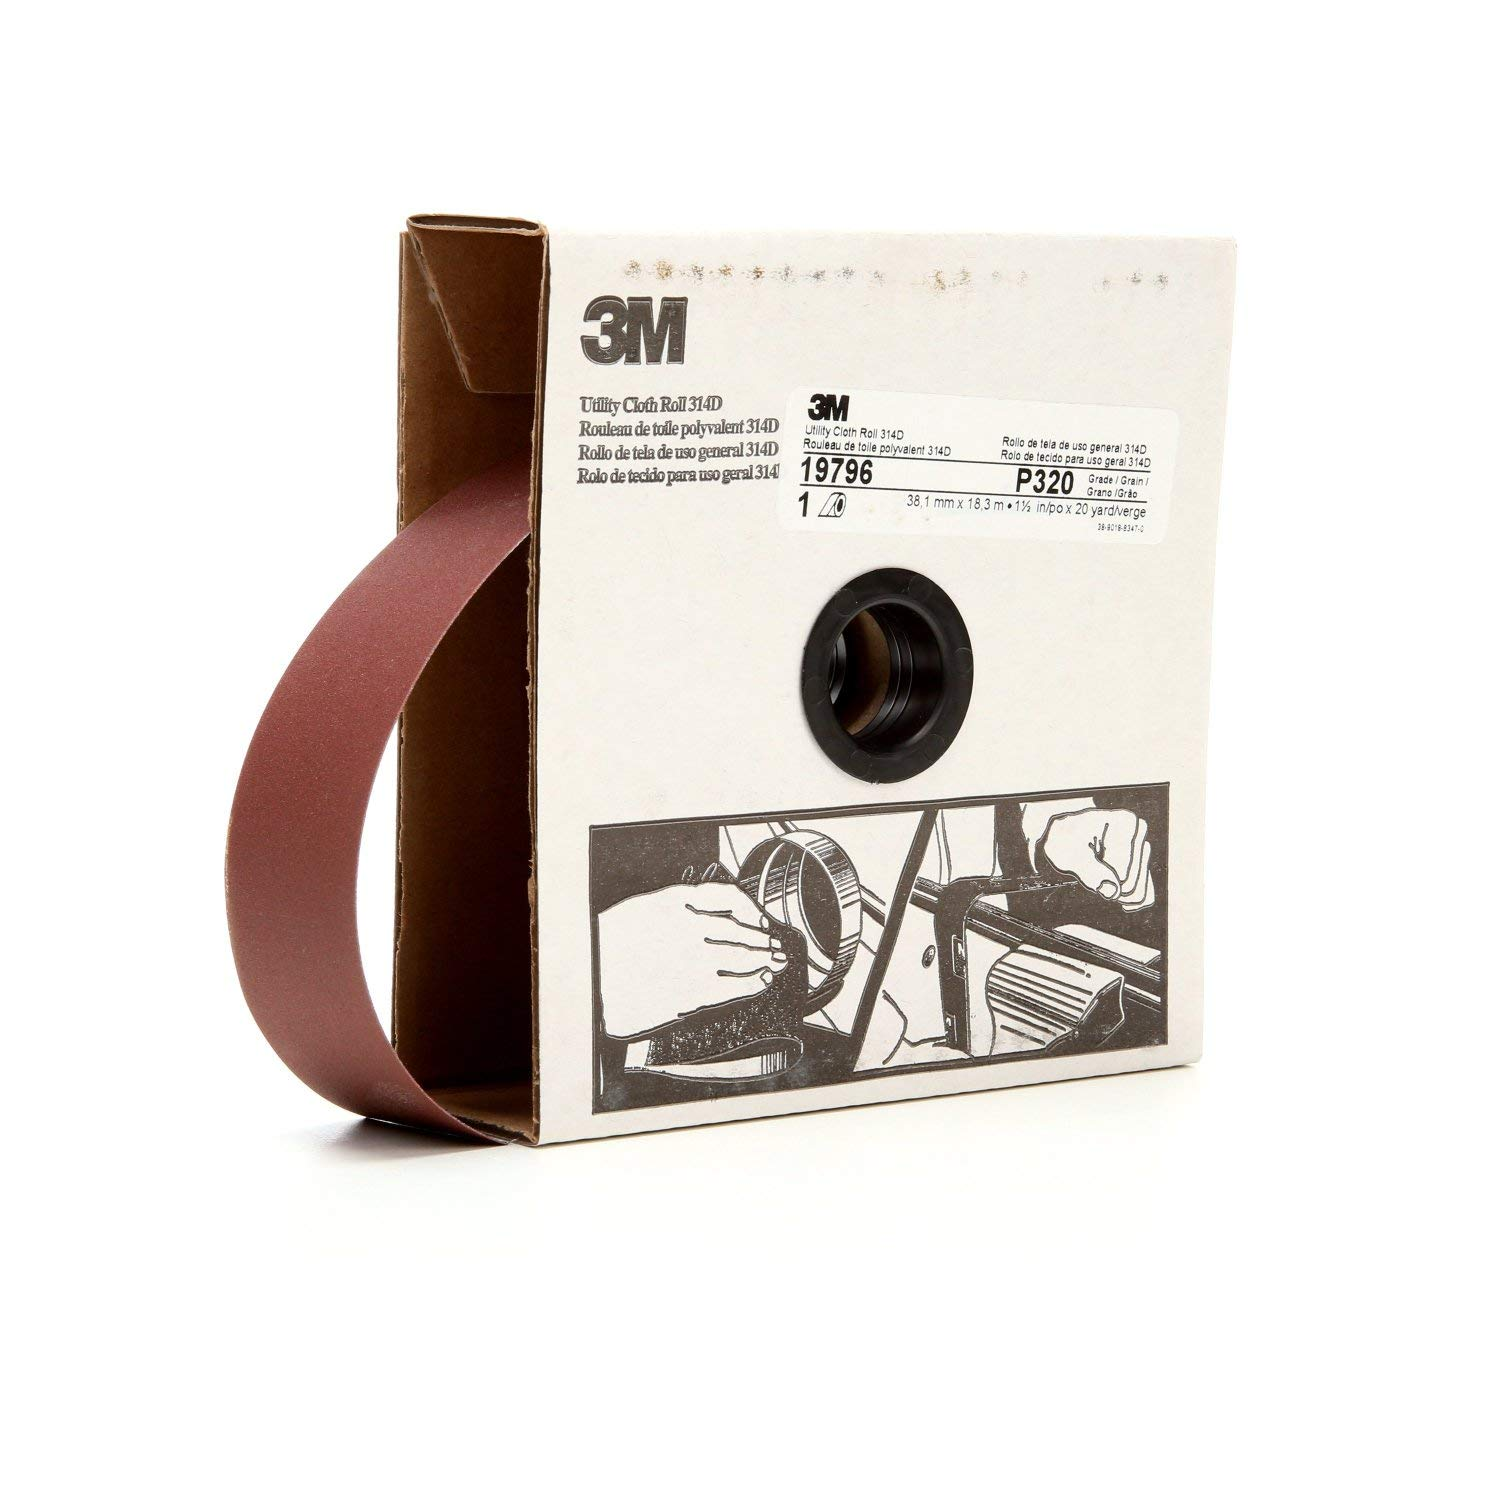 """3M Utility Cloth Roll 314D, Aluminum Oxide, 1-1/2"""" Width x 20 yds Length, P320 Grit, Maroon (Pack of 1)"""